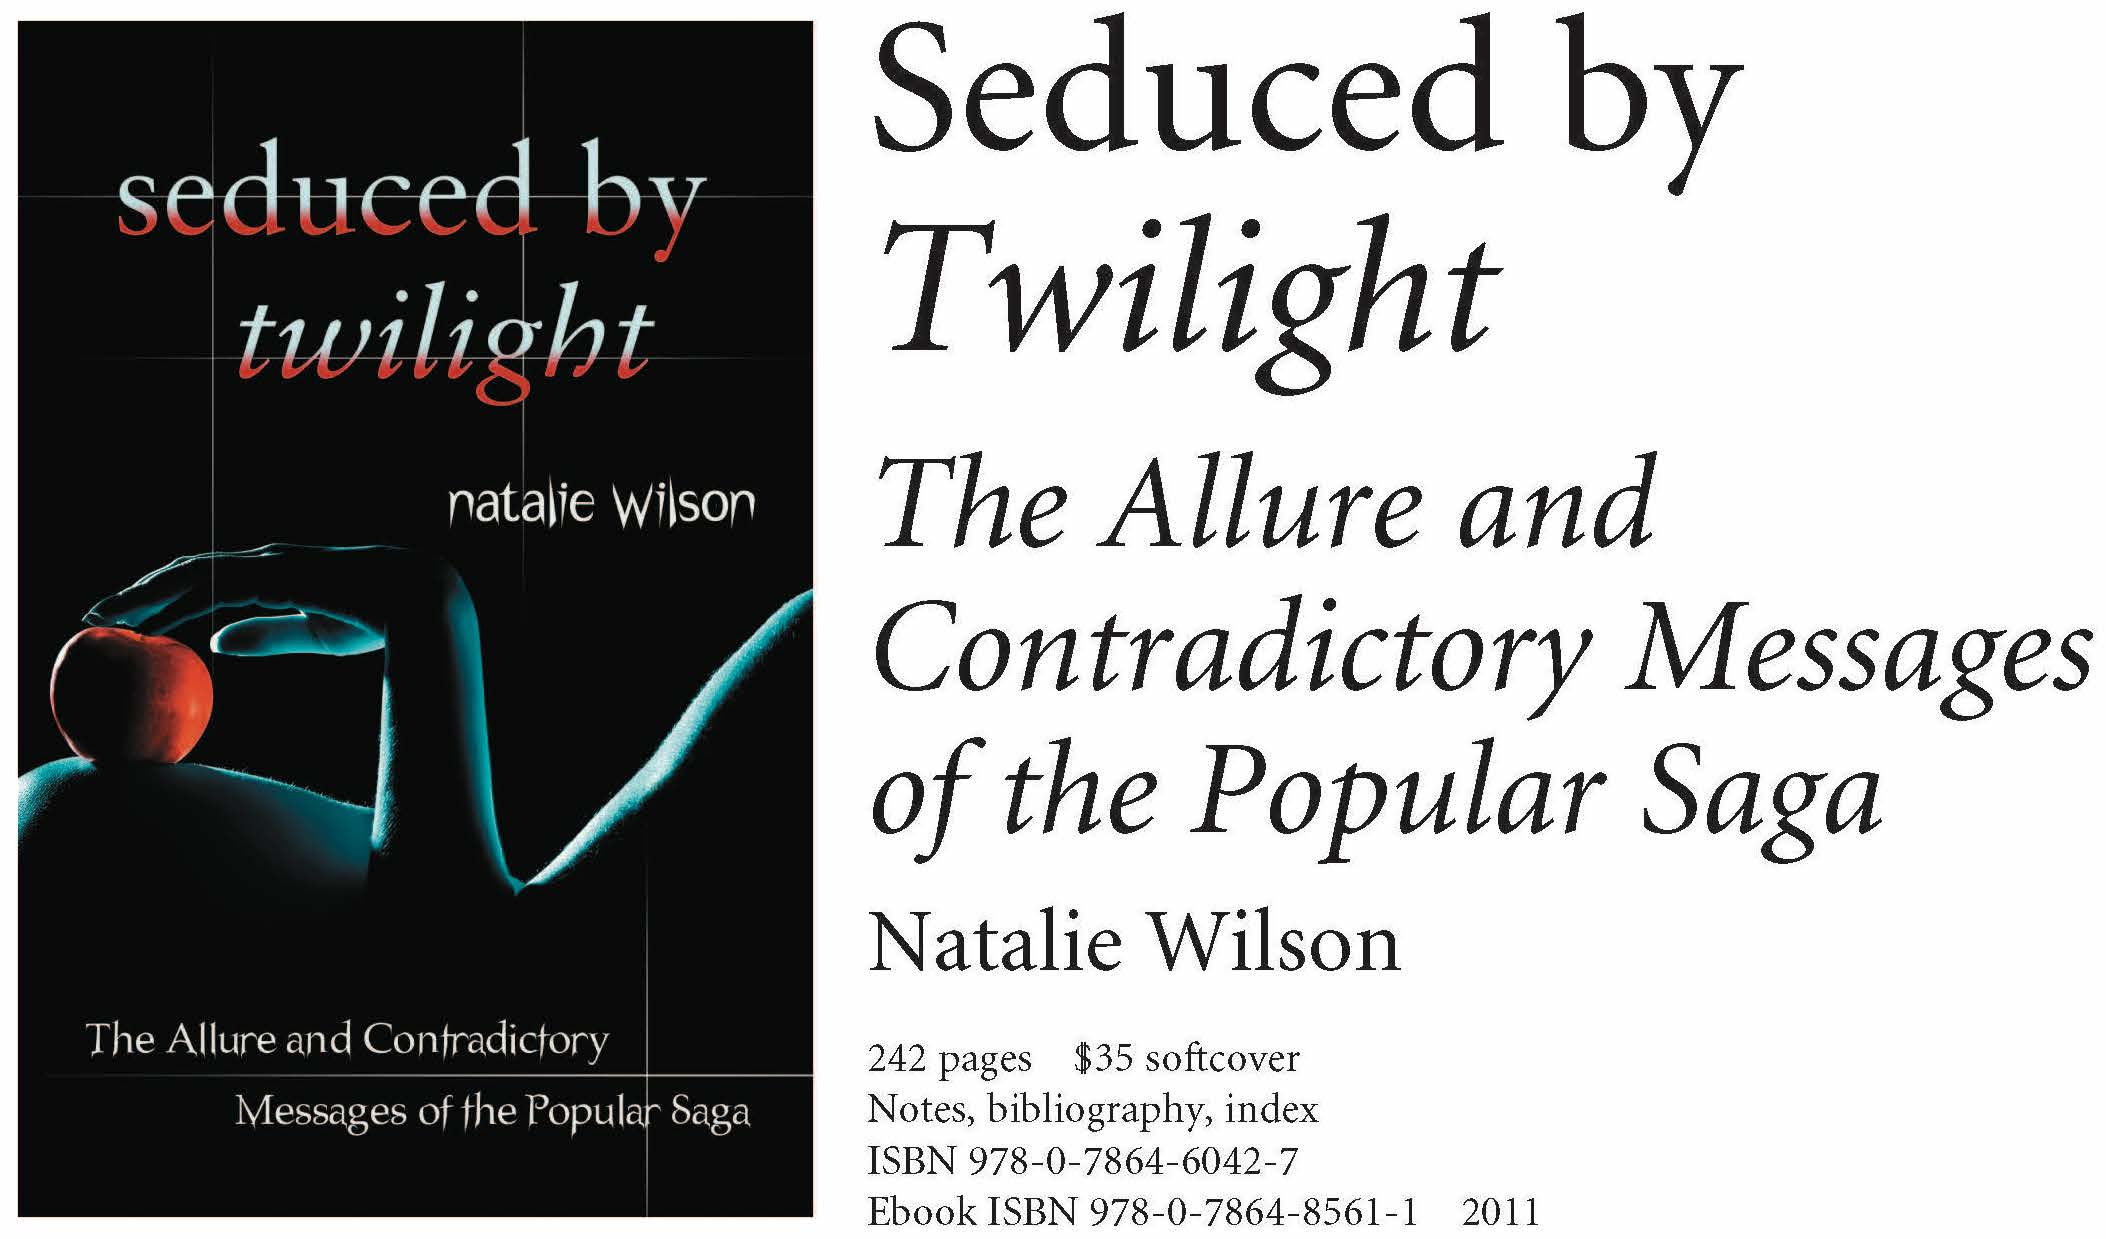 seduced by twilight cover